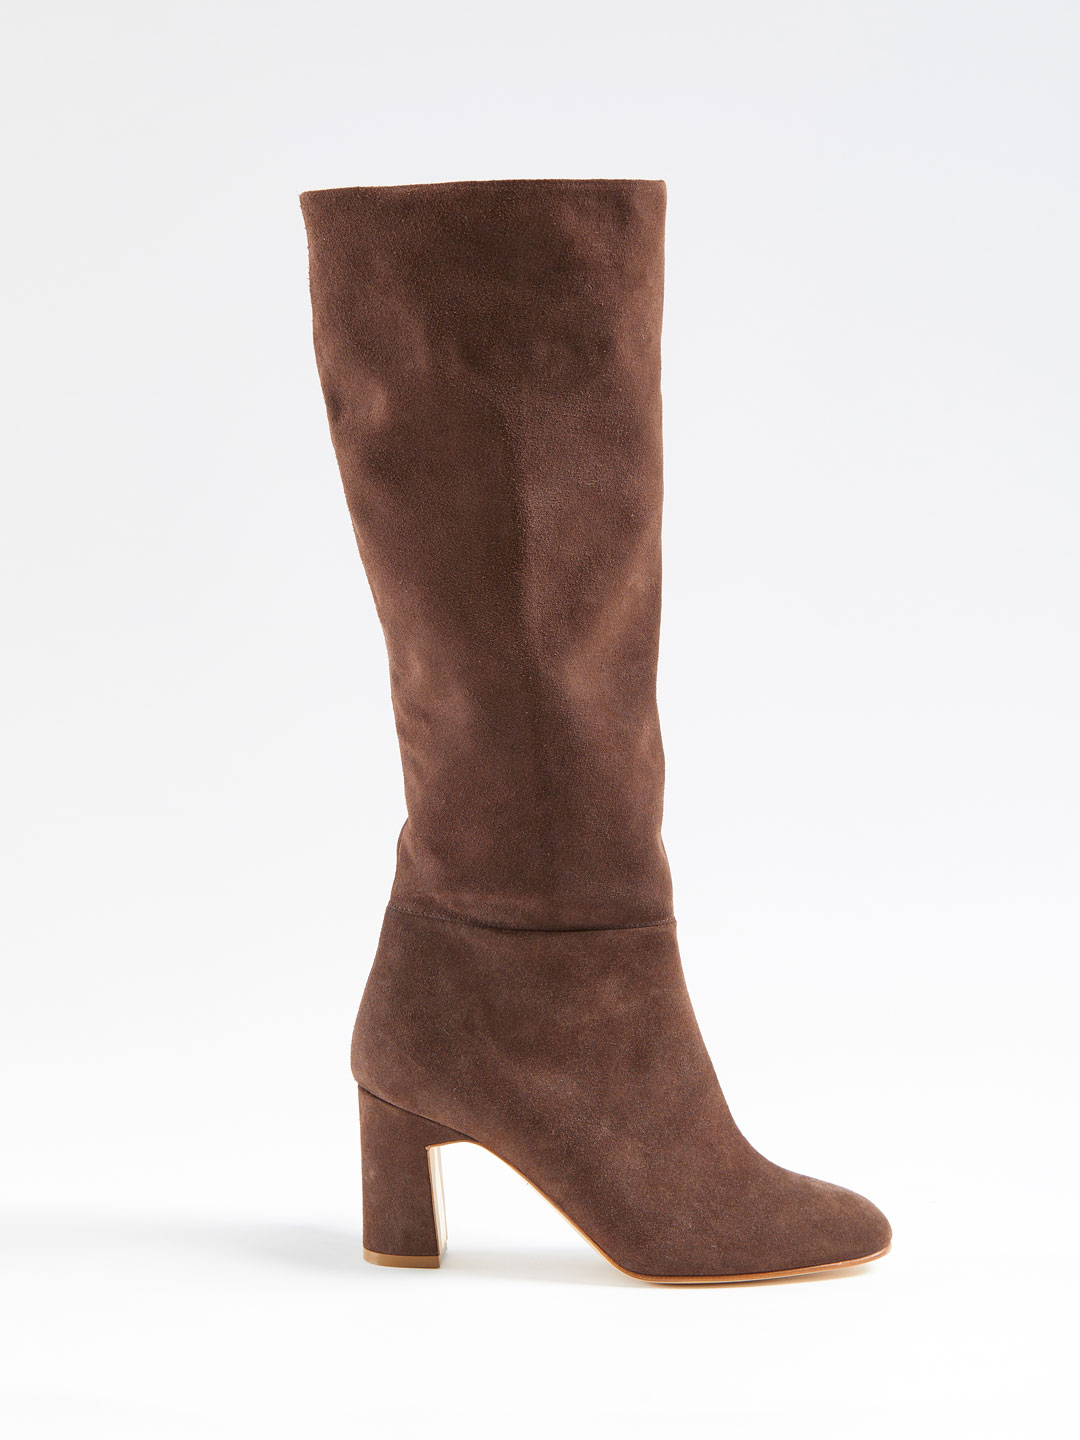 Au Revoir Suede Heel Long Boots - Brown